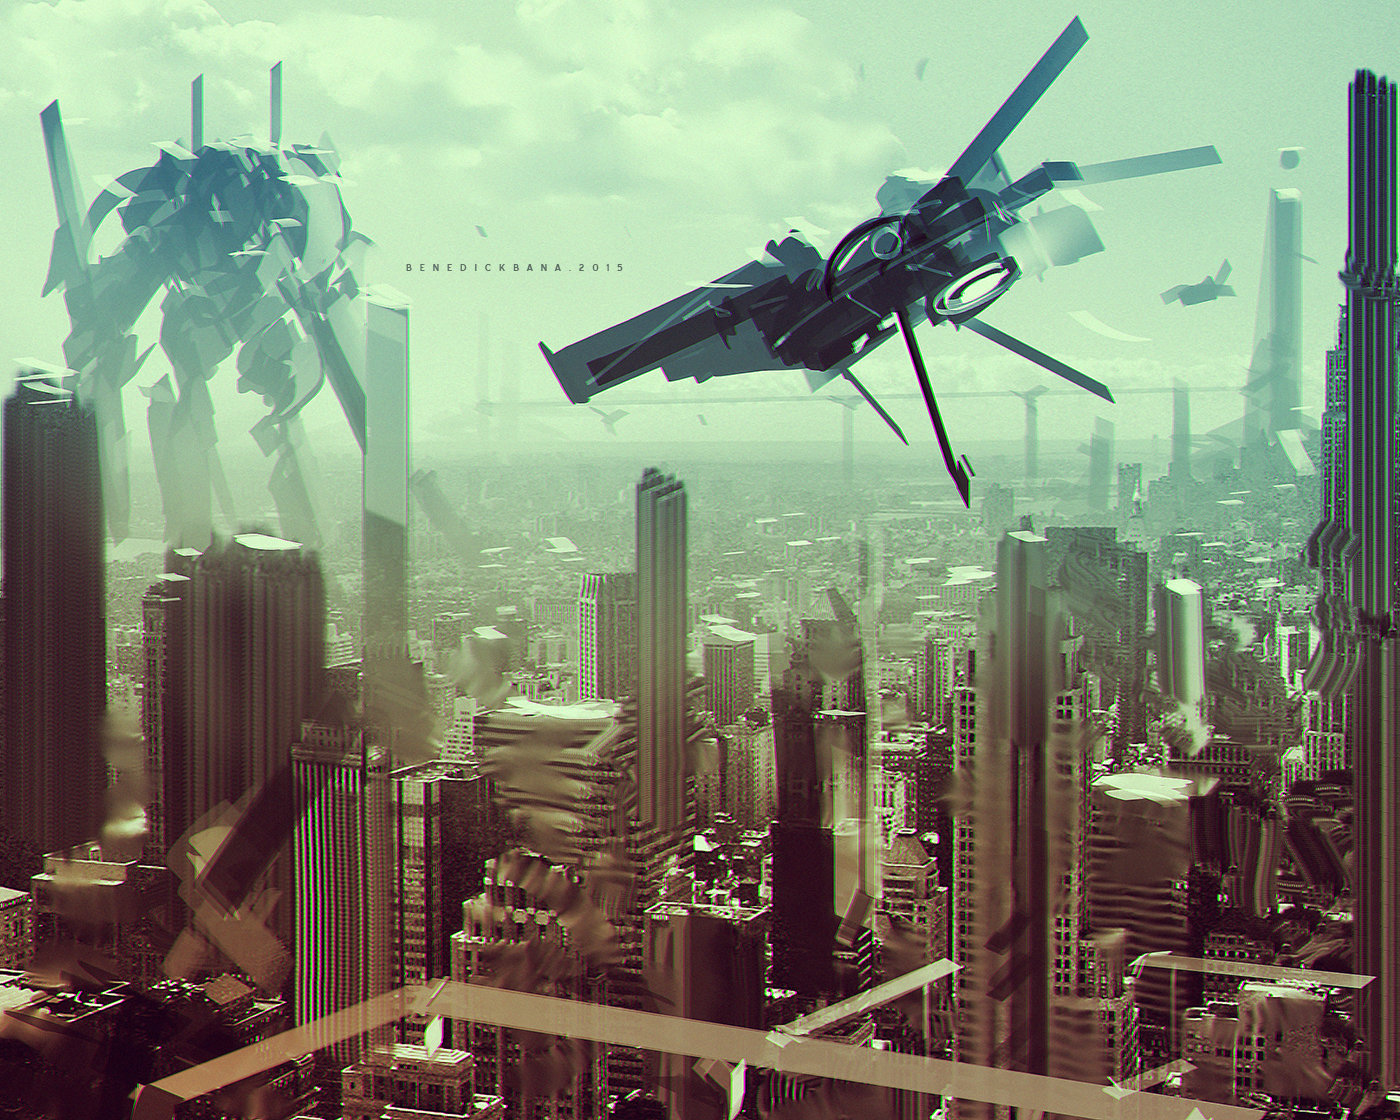 Benedick bana guardian city lores